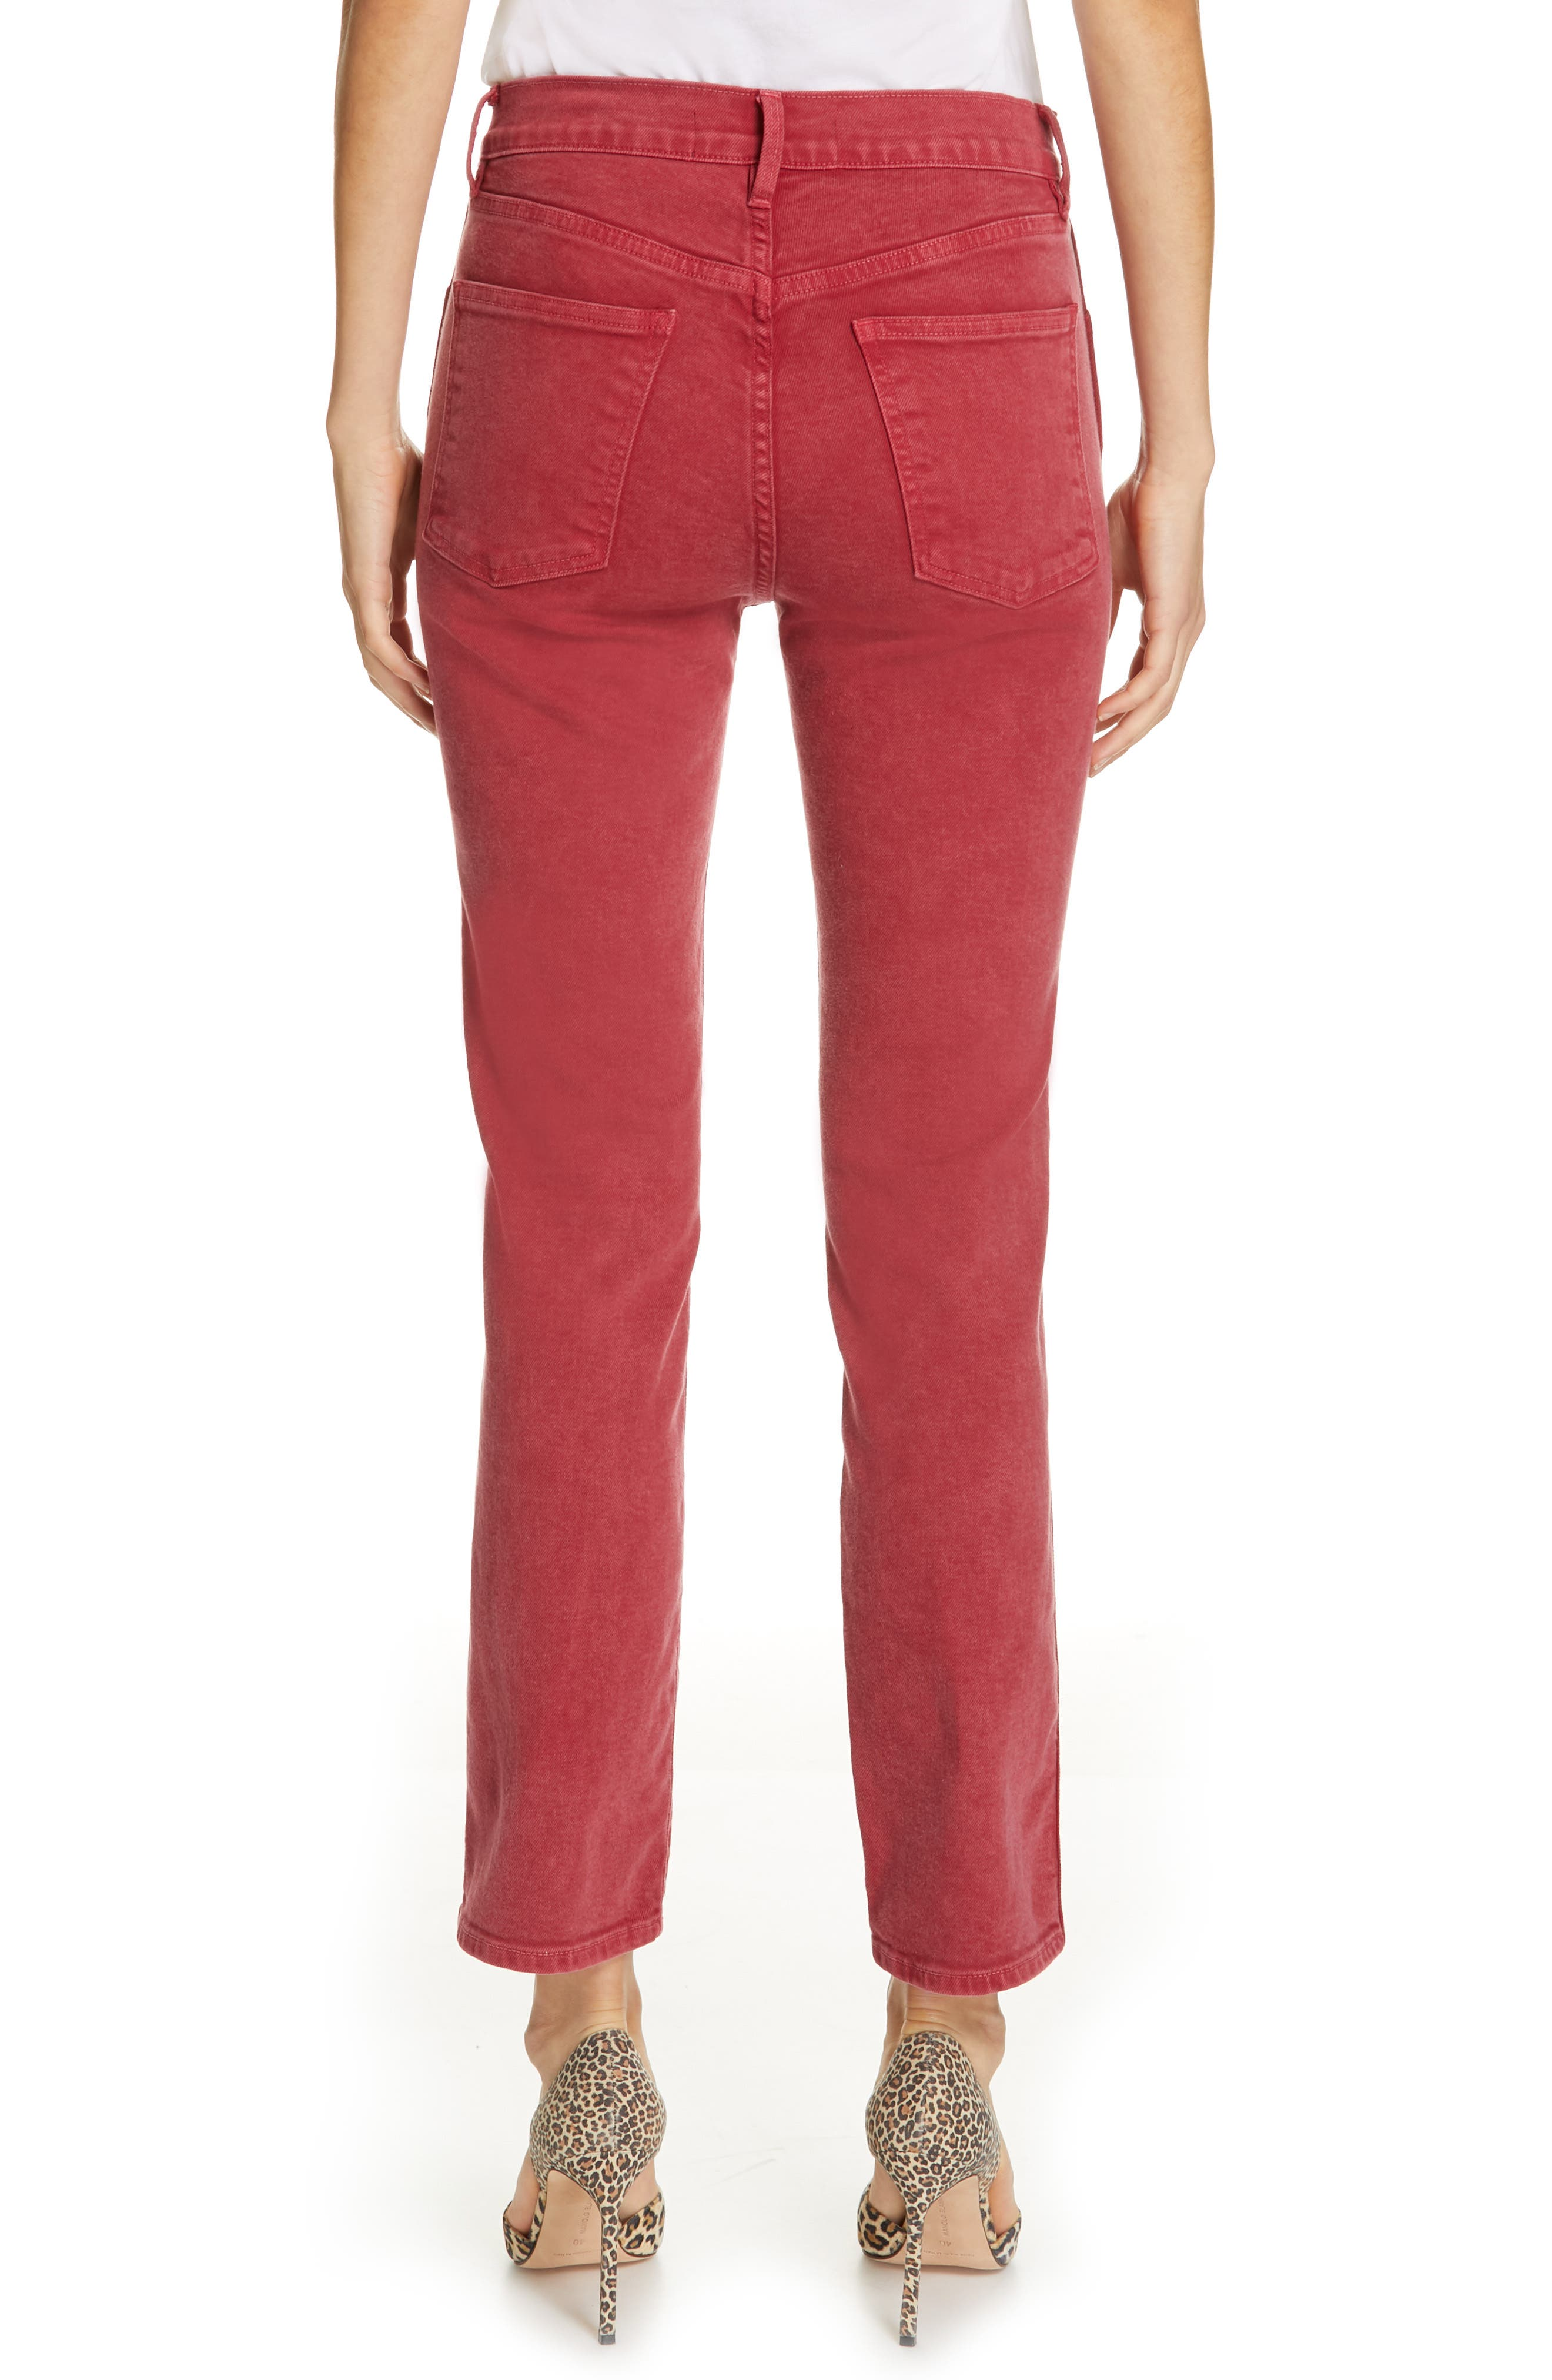 3X1 NYC,                             Stevie Straight Leg Jeans,                             Alternate thumbnail 2, color,                             MINERAL RUST RED